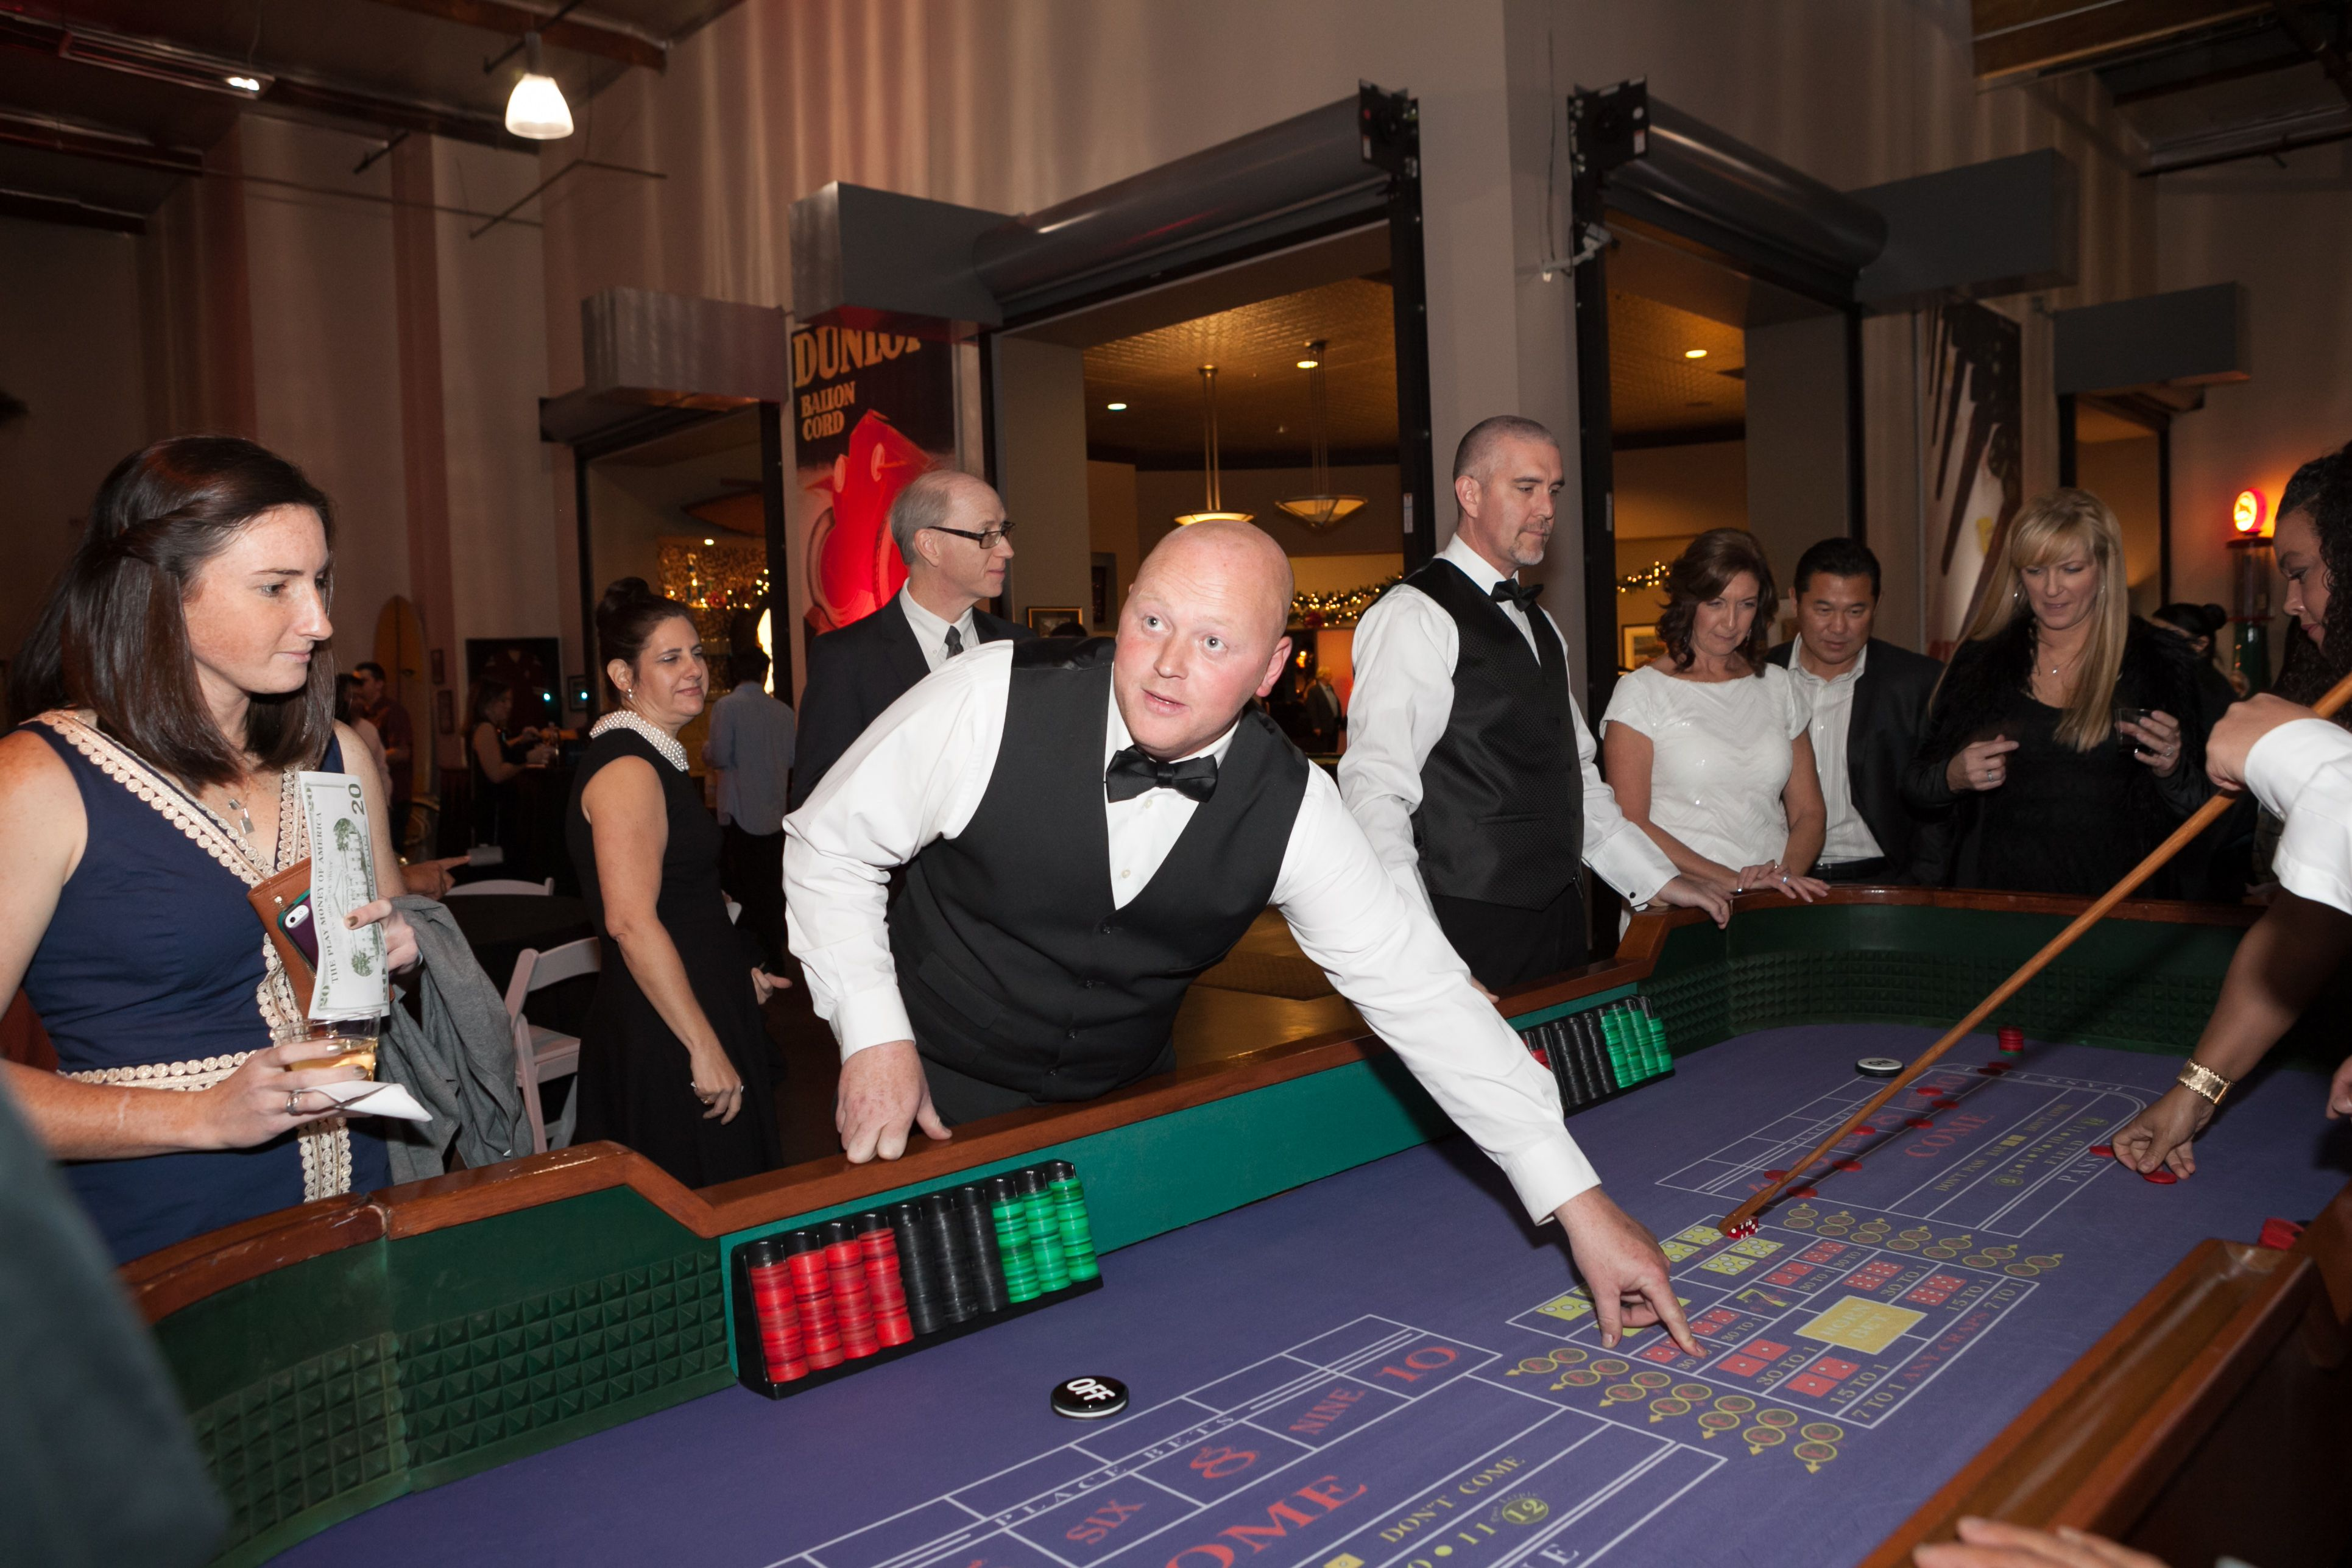 Casino themed company holiday party with real craps handlers!